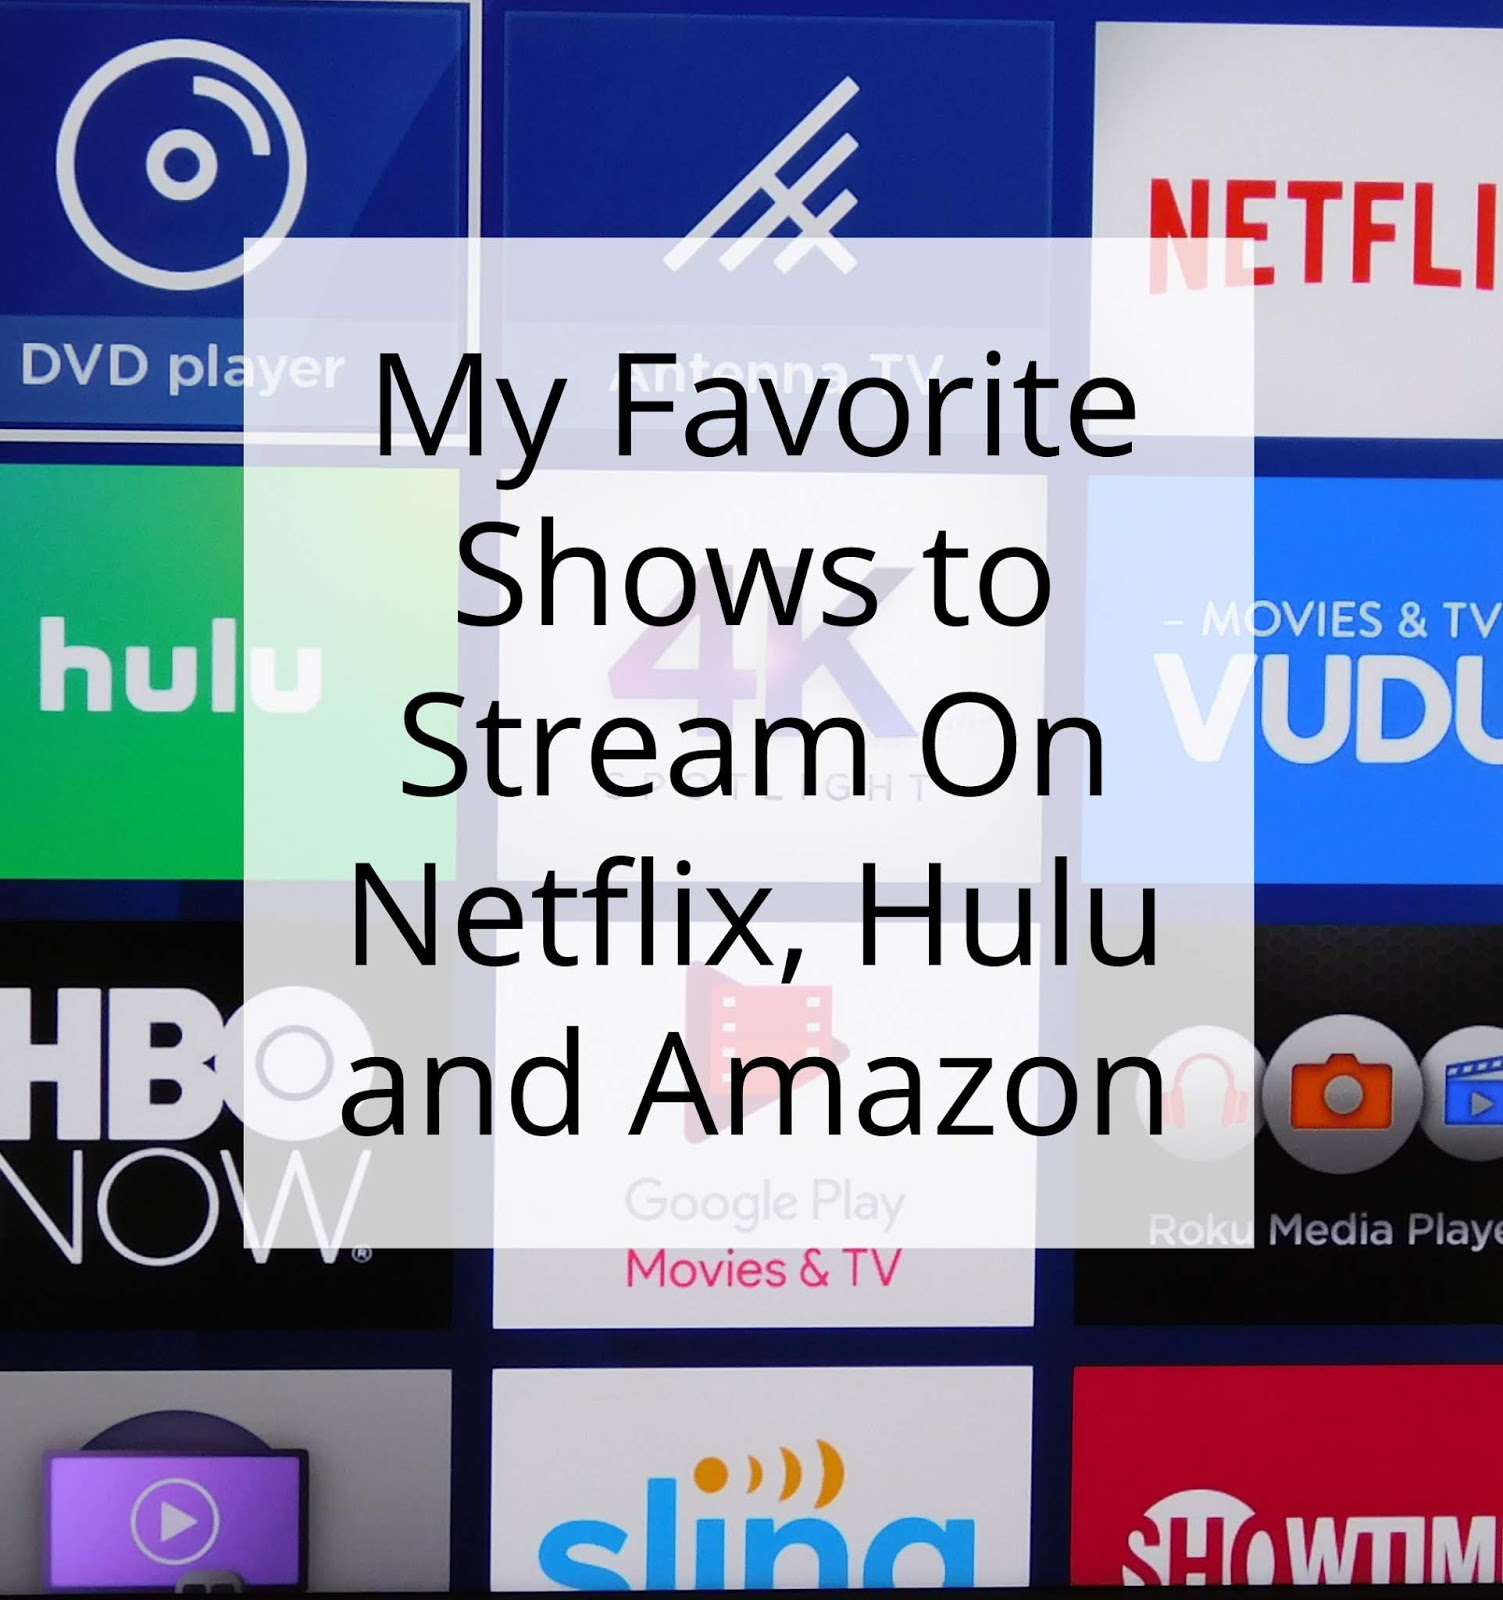 Hulu Shows My Favorite Shows Streaming Right Now On Netflix Hulu And Amazon